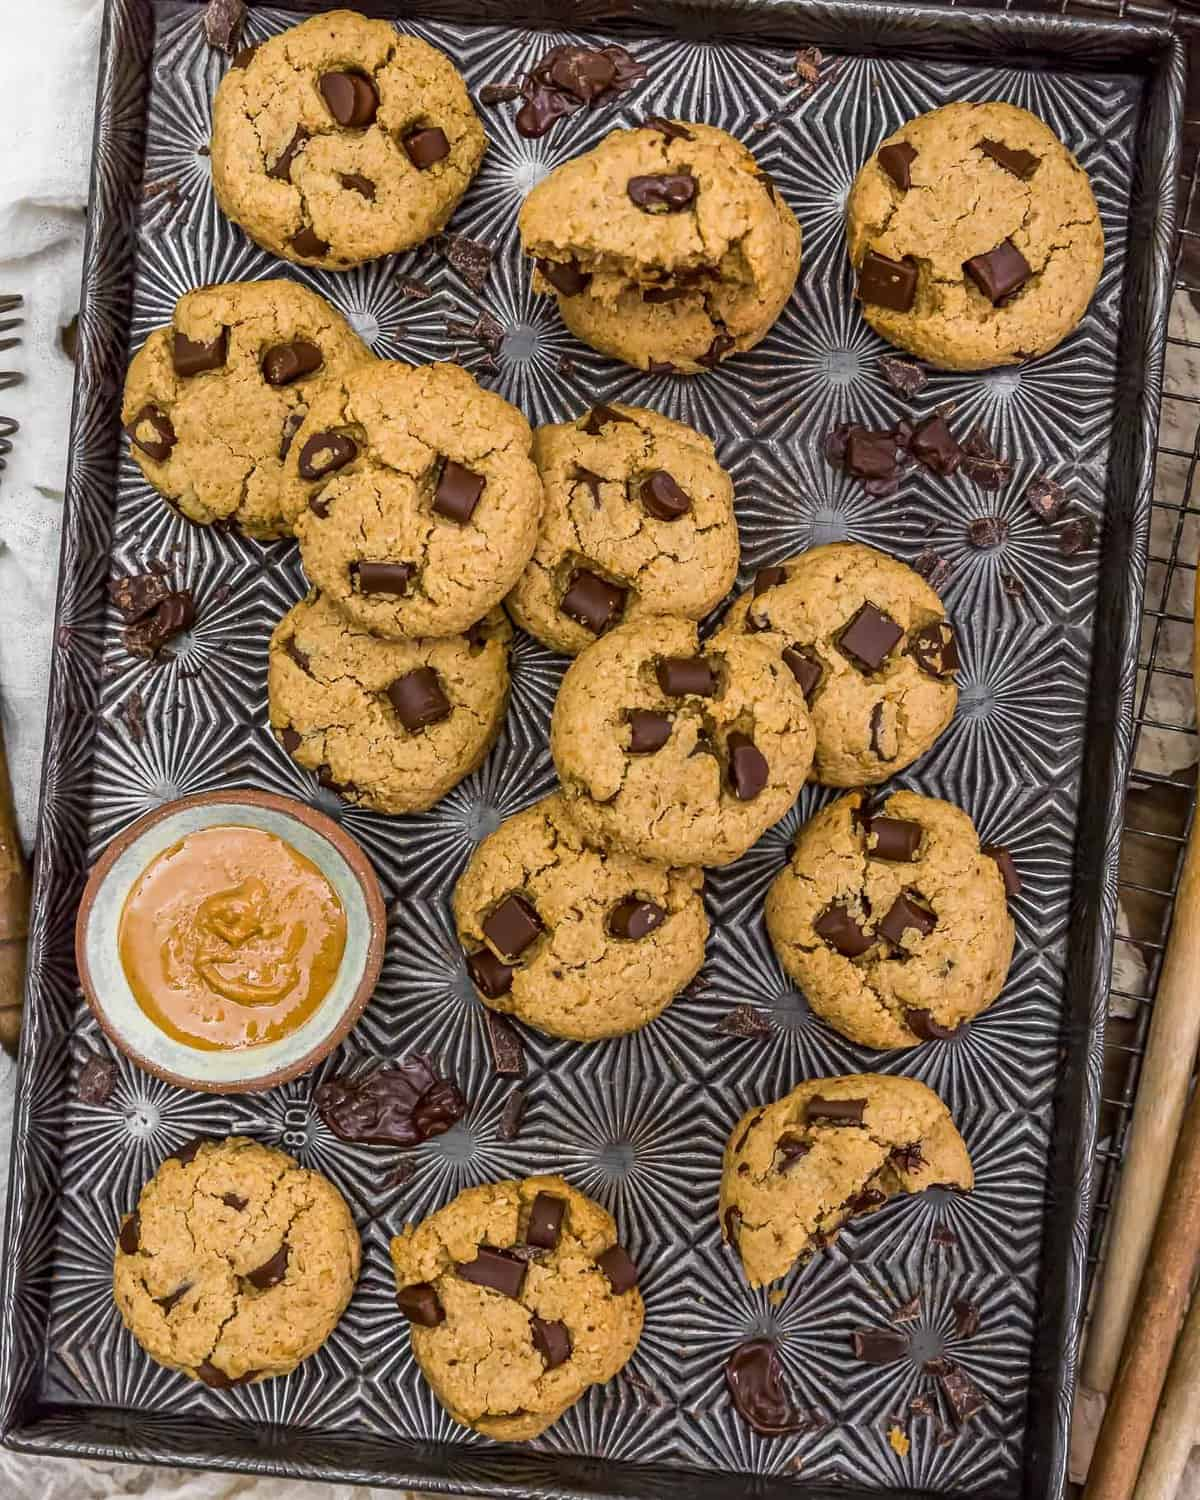 Tray of Vegan Peanut Butter Chocolate Chip Cookies